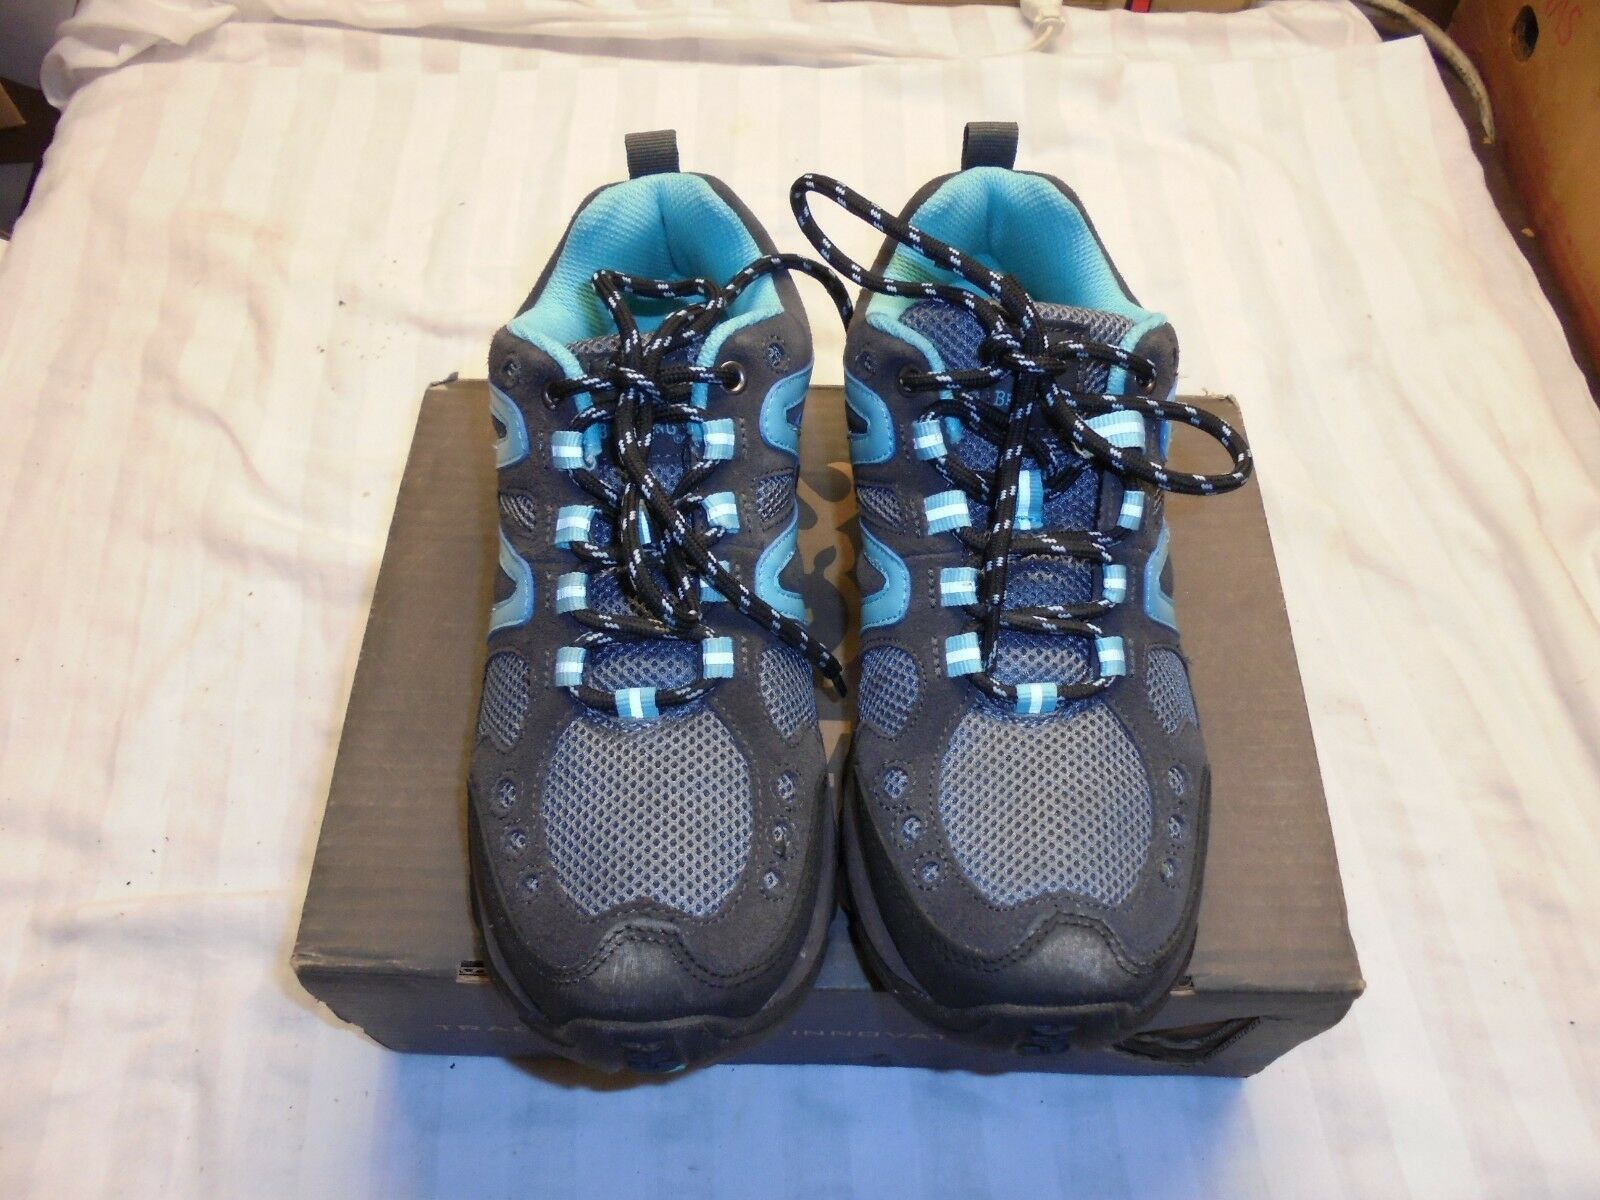 Browning WOMENS Delano Trail shoes Size 8 Hiking walking